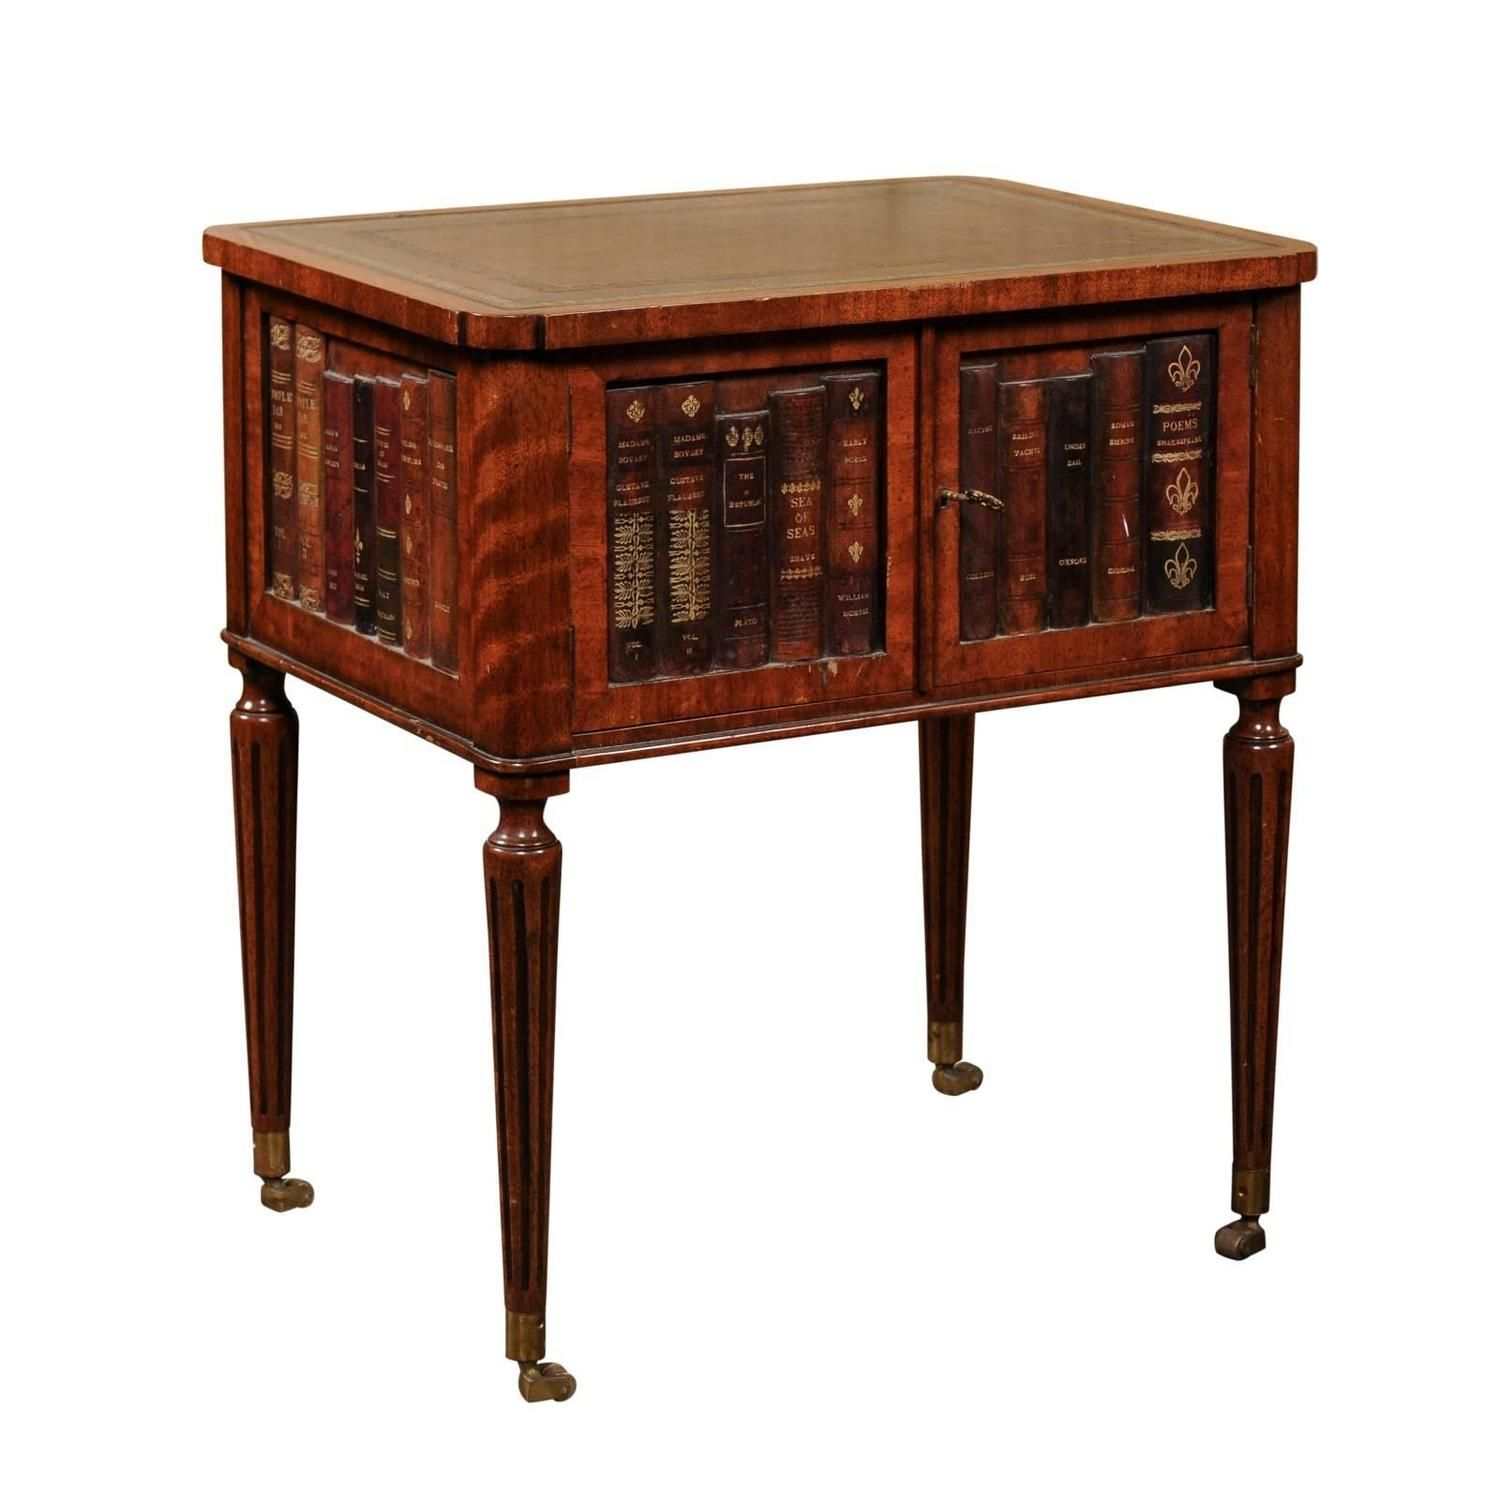 English 1920s Mahogany End Table With Leather Top And Faux Leather